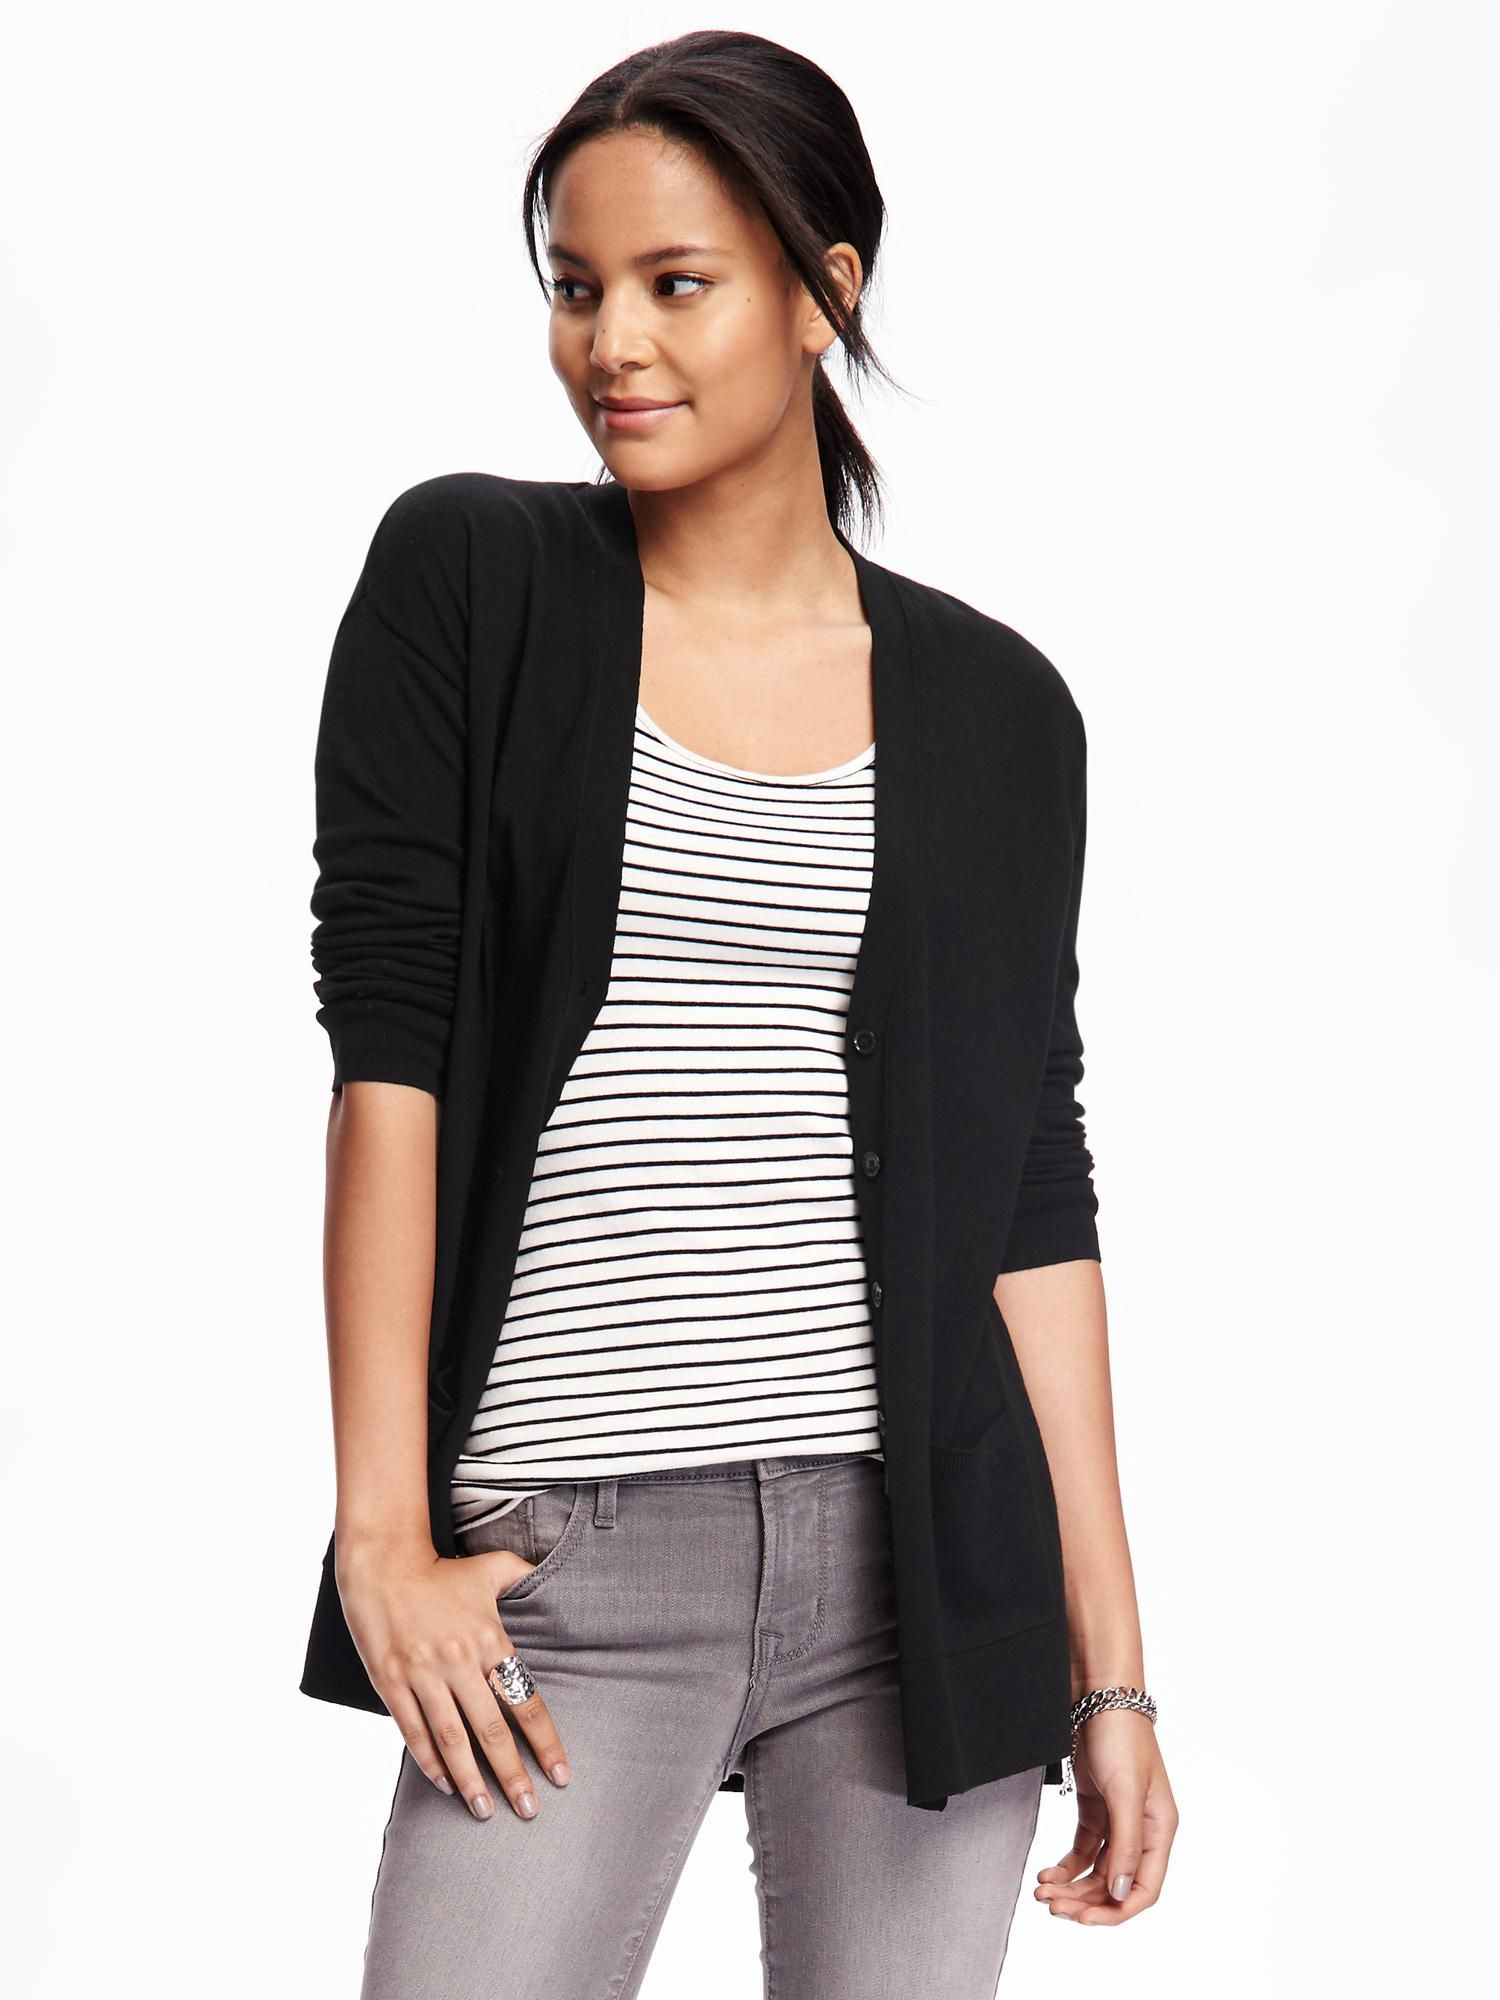 Boyfriend Cardigan for Women | Old Navy | Clothing | Pinterest ...